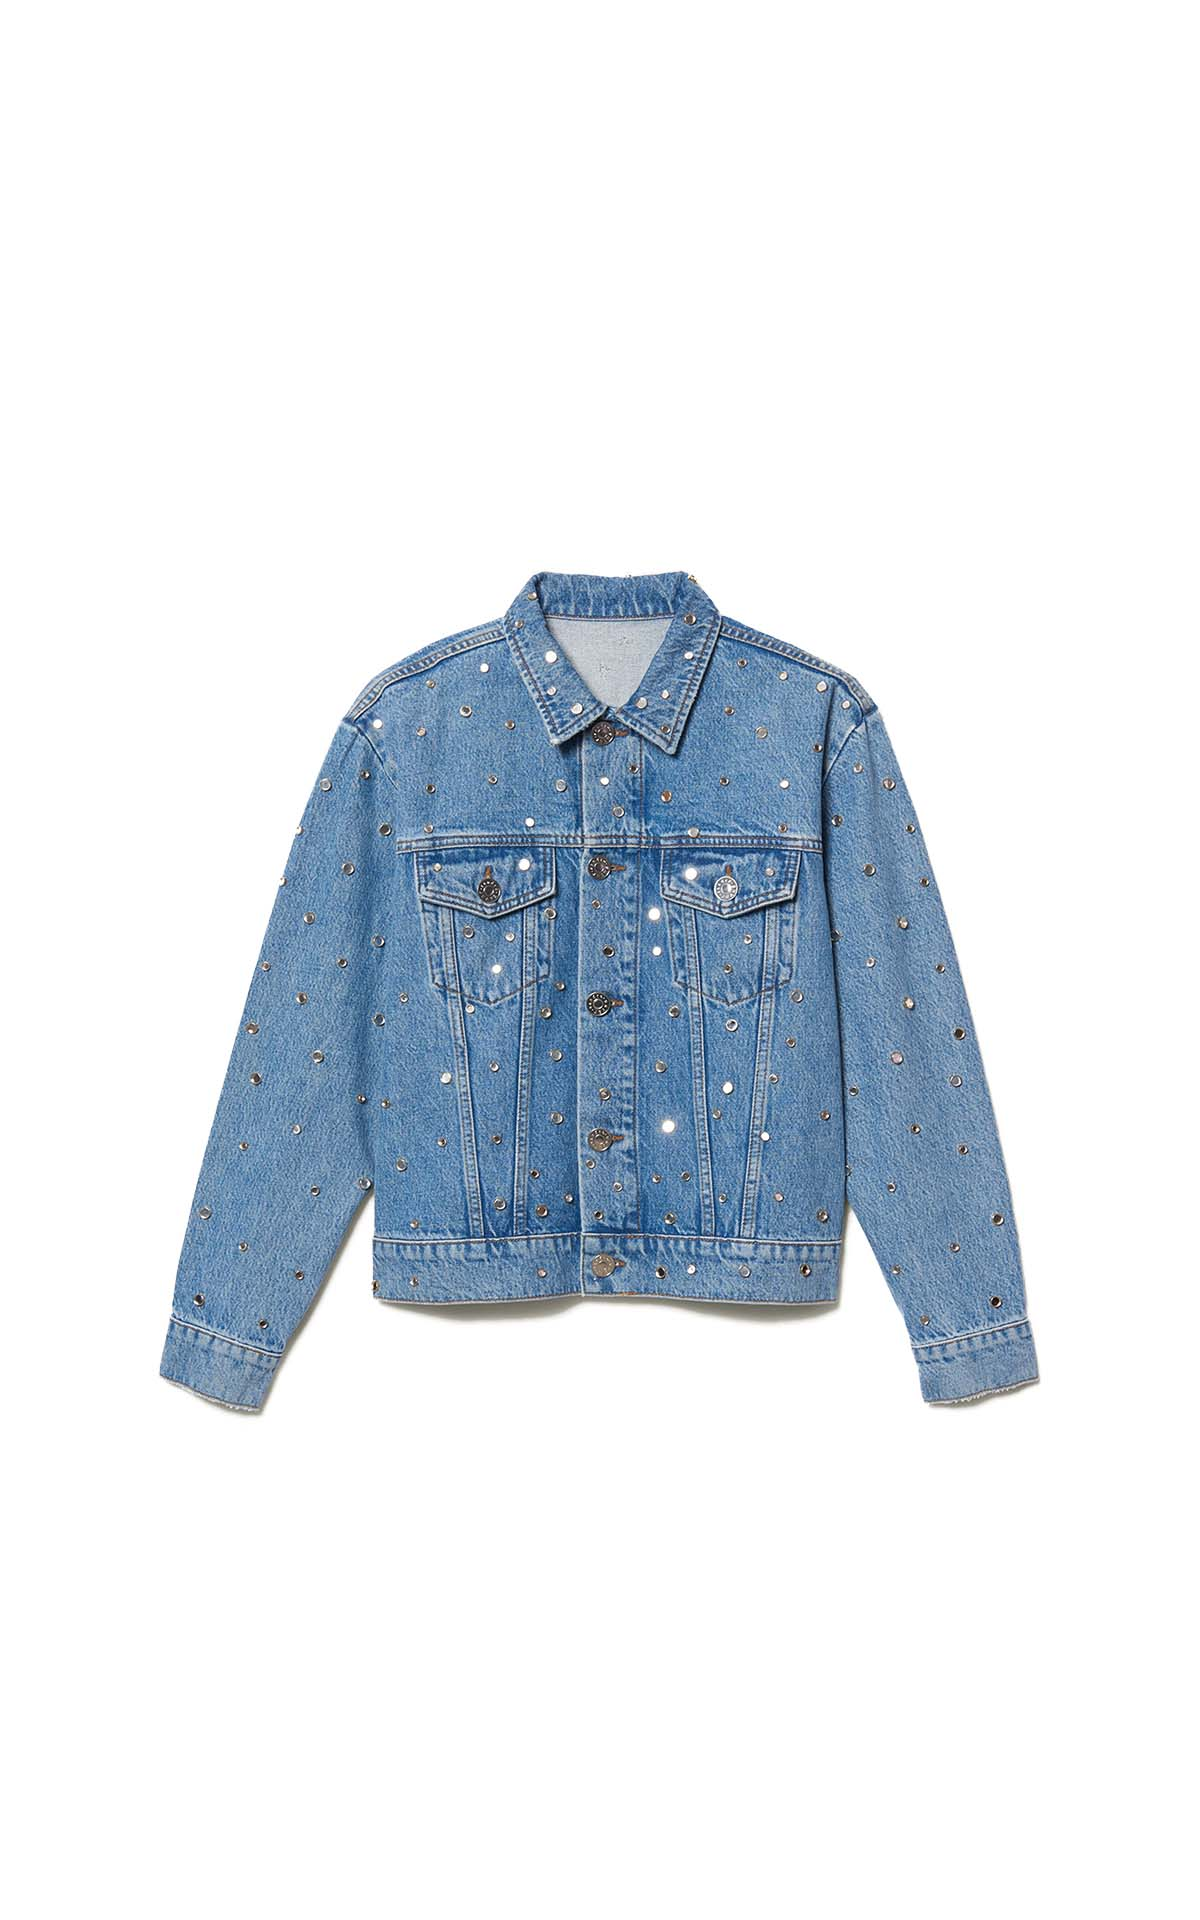 Sandro paris embellished denim jacket at The Bicester Village Shopping Collection